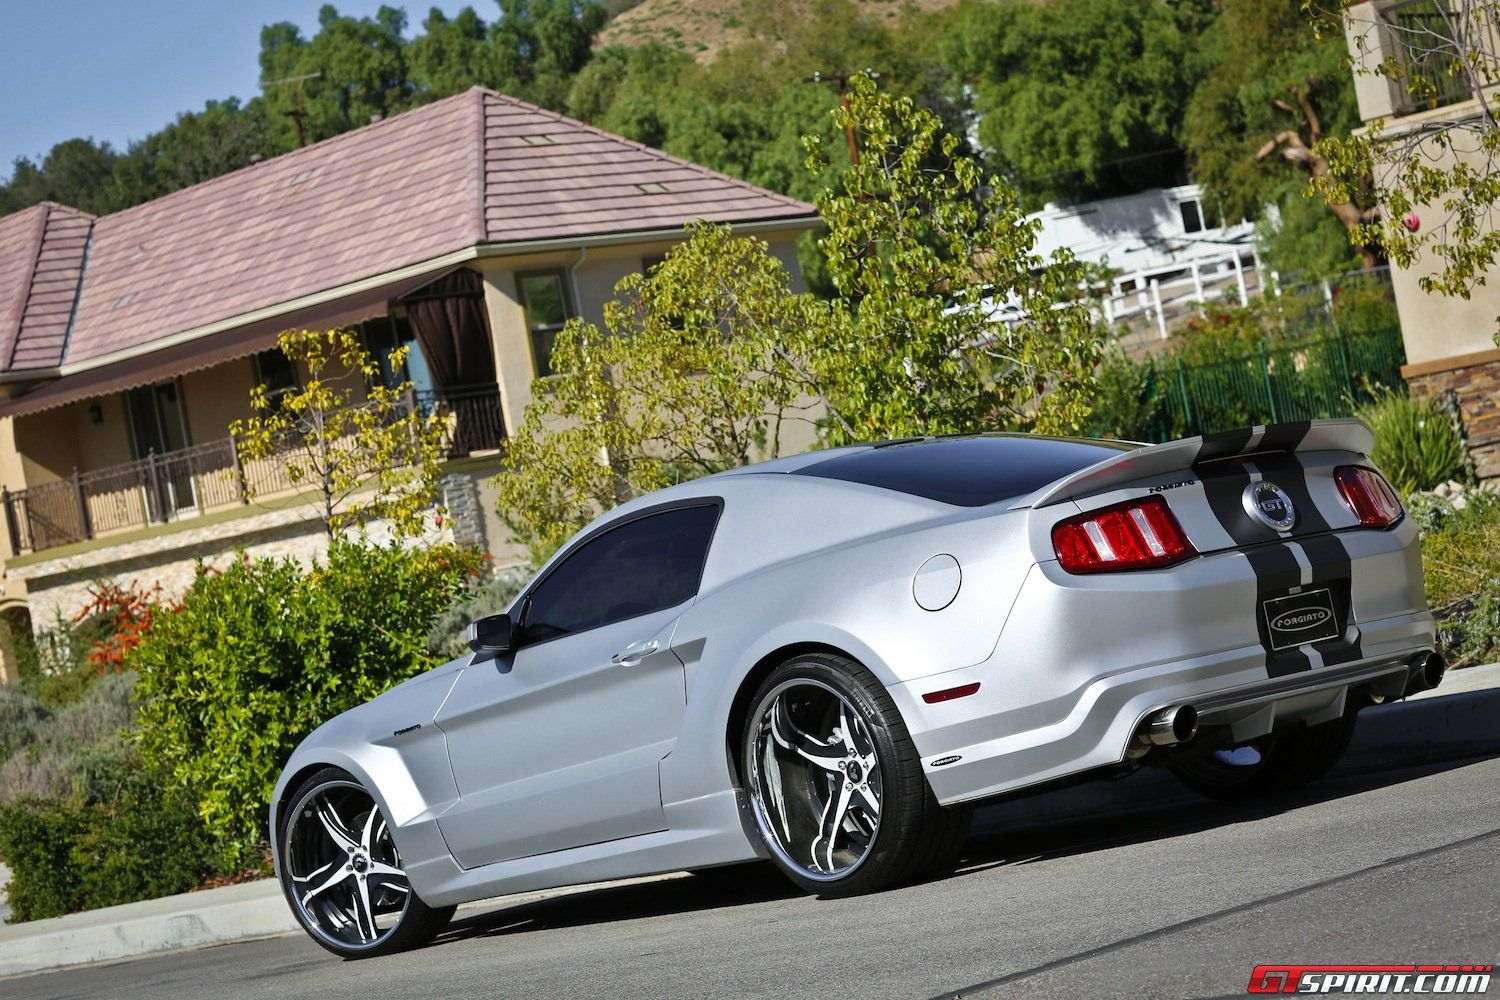 Widebody Ford Mustang Gt With F2 05 Forgiato Wheels Ford Mustang